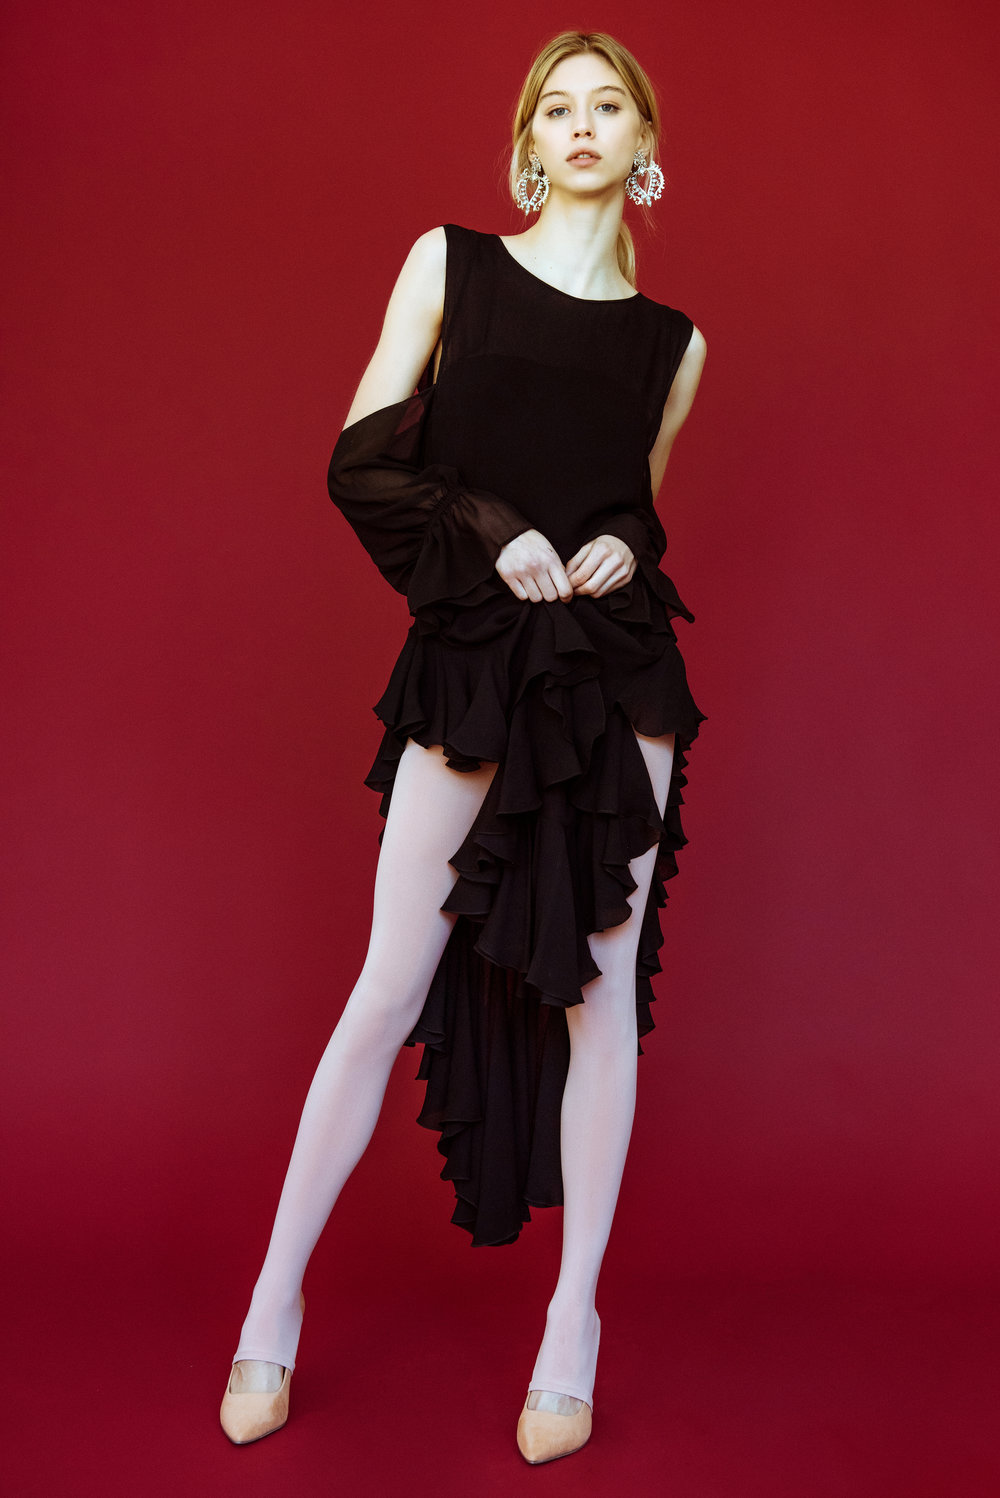 Copy of kelsey randall emerging designer made-to-measure fashion editorial custom bespoke black silk chiffon crinkle double layer ruffle flounce hem high slit side sheer